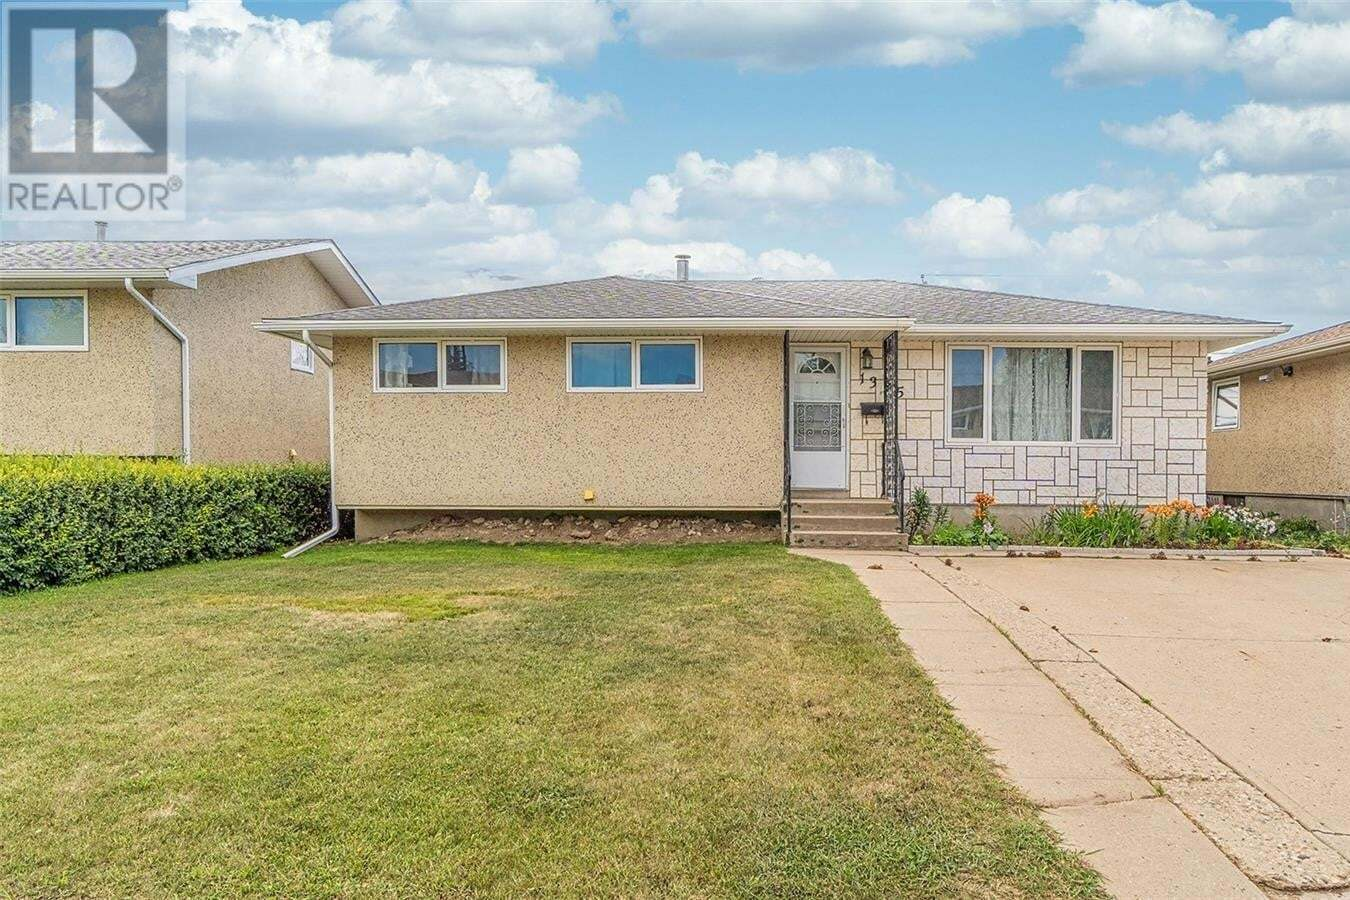 House for sale at 1335 Athabasca St W Moose Jaw Saskatchewan - MLS: SK819480